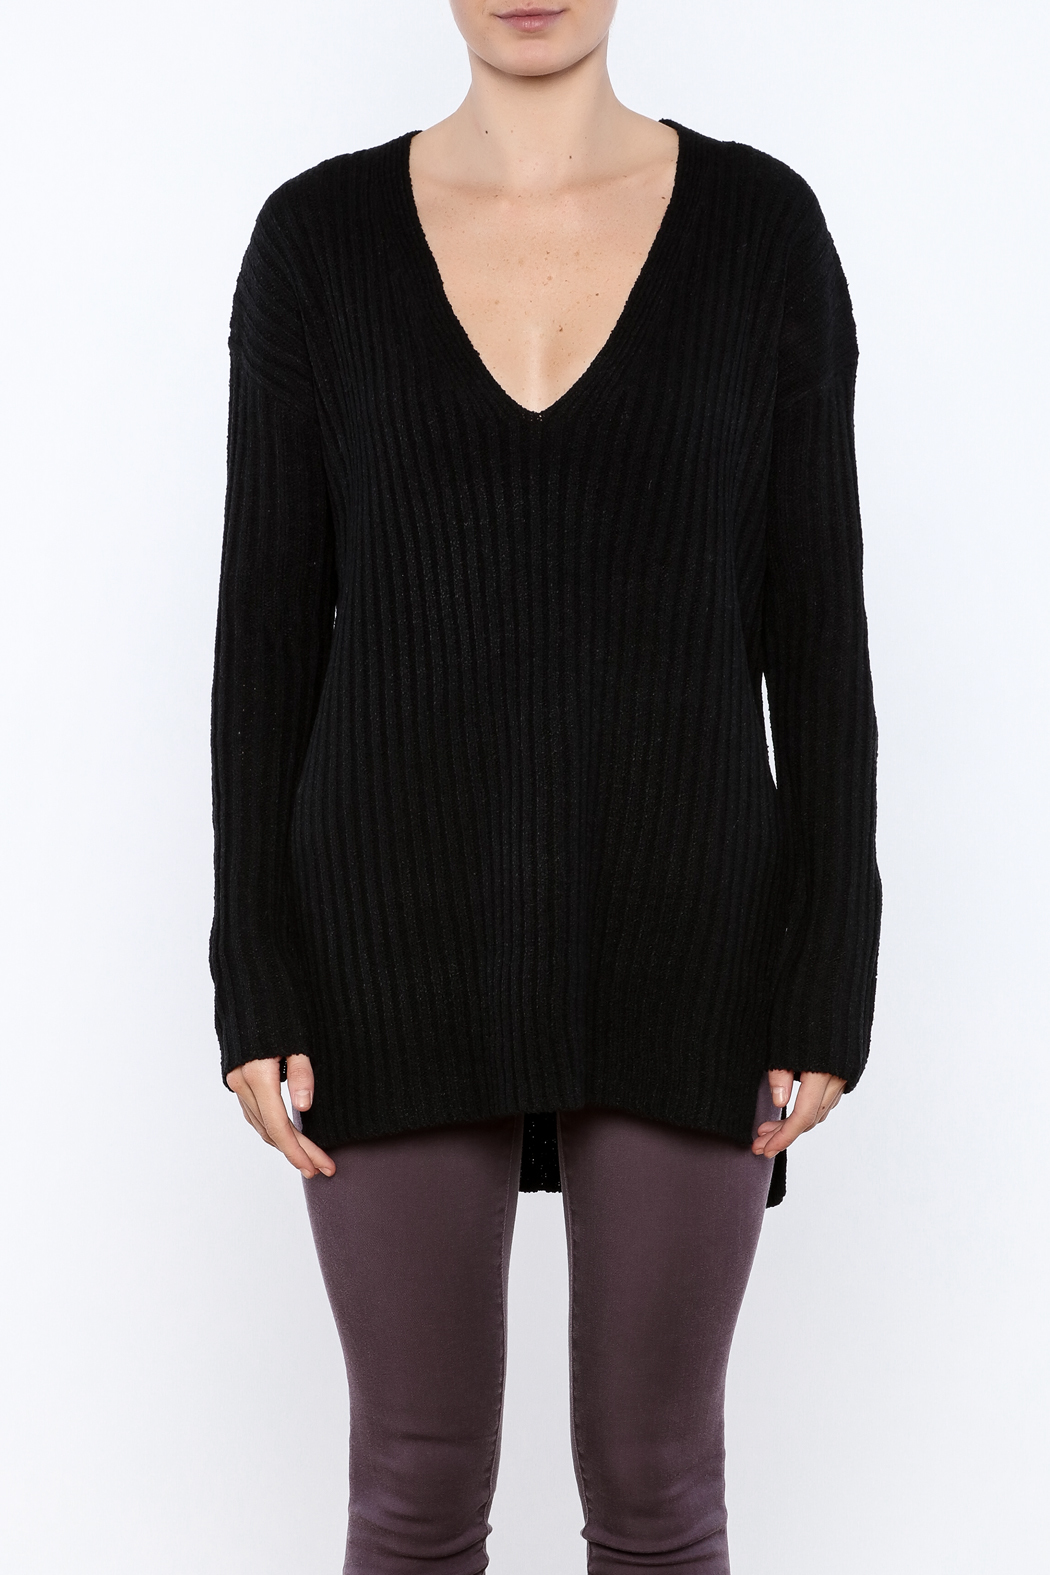 Lush Black Oversized Sweater from North Shore by Vamped — Shoptiques